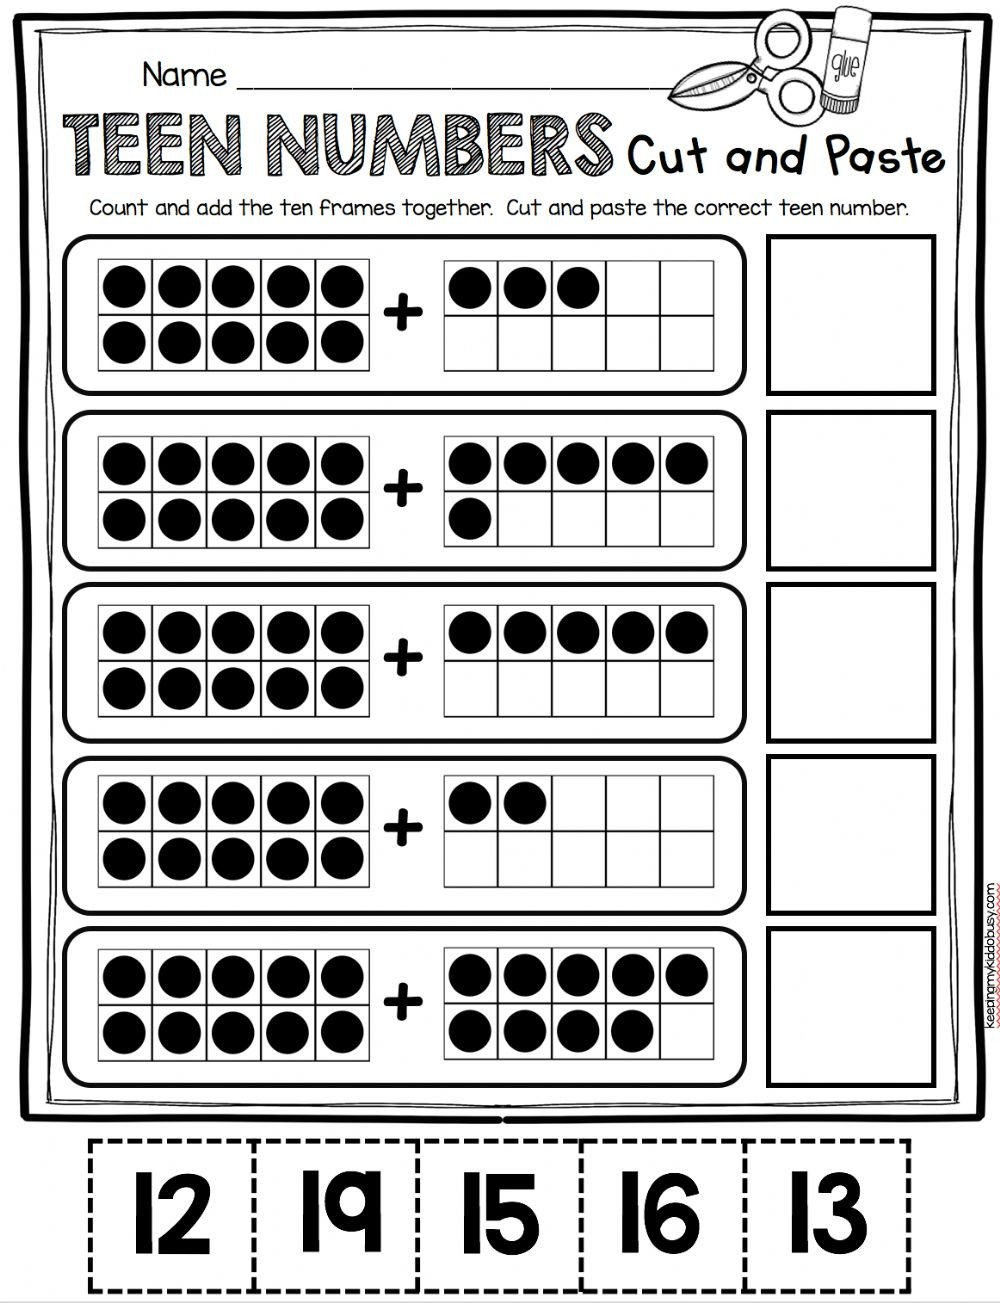 Decomposing Numbers to 10 Worksheets Teen Number Cut and Paste Interactive Worksheet